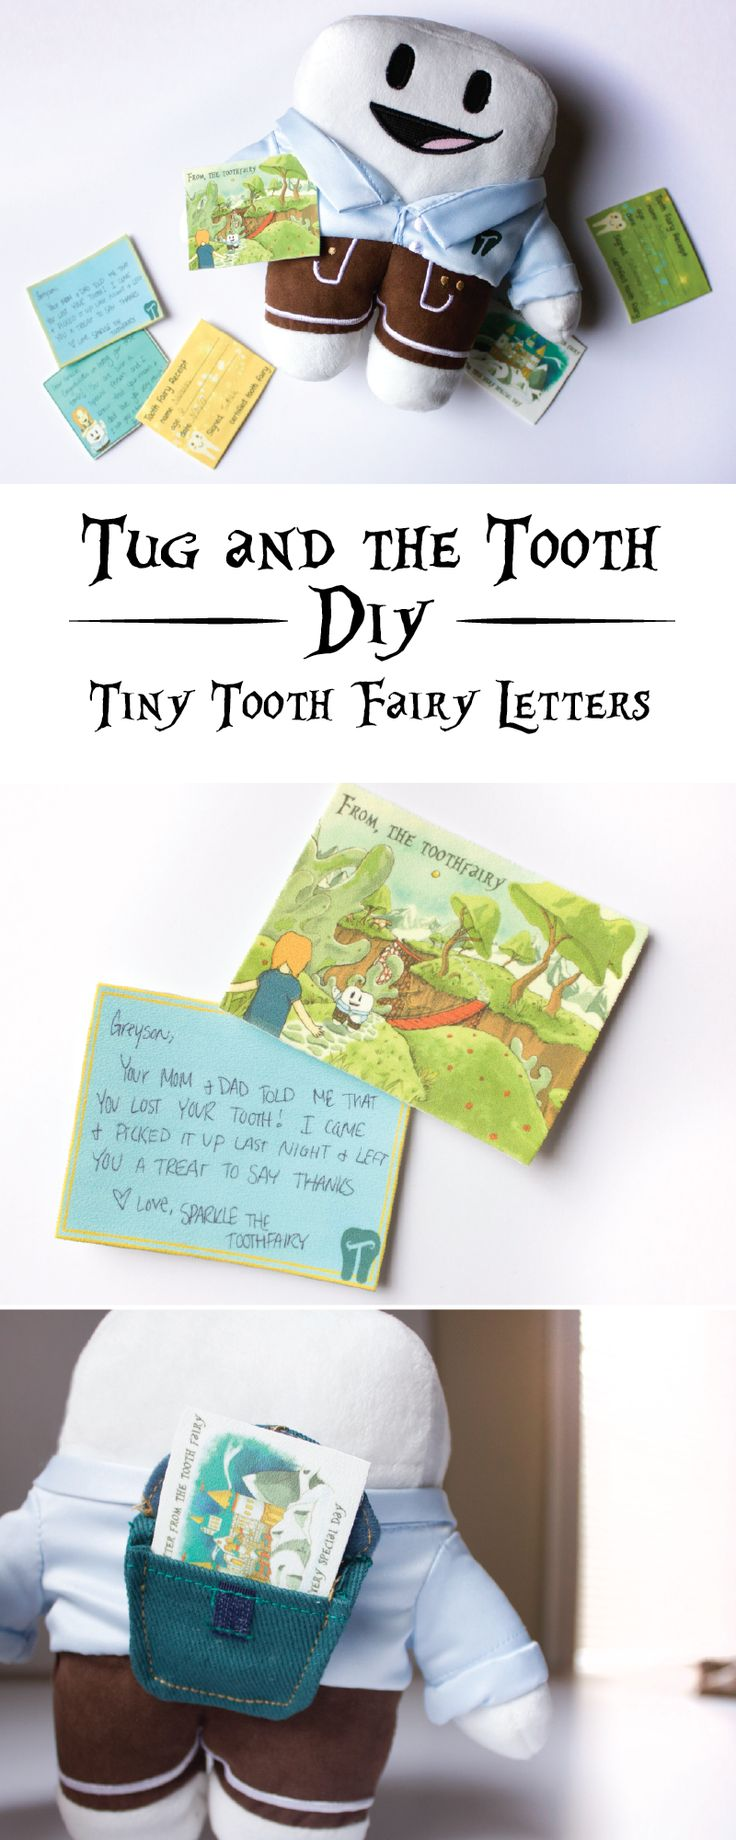 17 best ideas about tooth fairy letters on pinterest for Fairy letter ideas